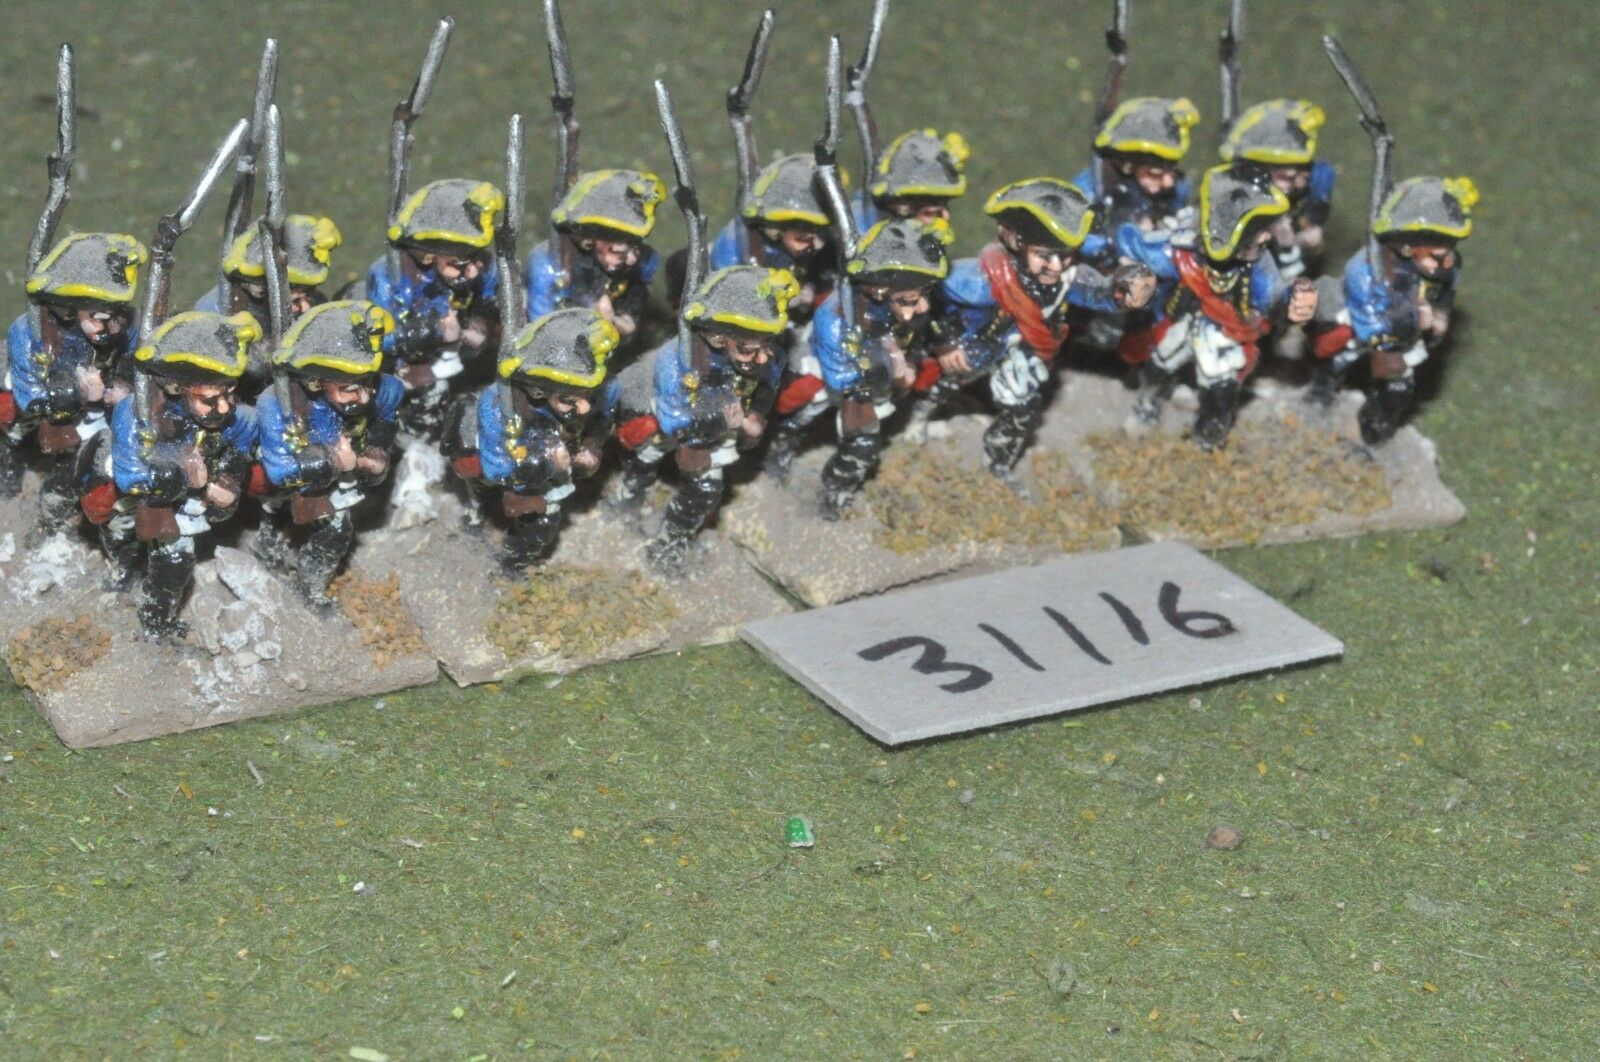 25mm 7YW 7YW 7YW   prussian - musketeers 16 figures - inf (31116) bfdb2f